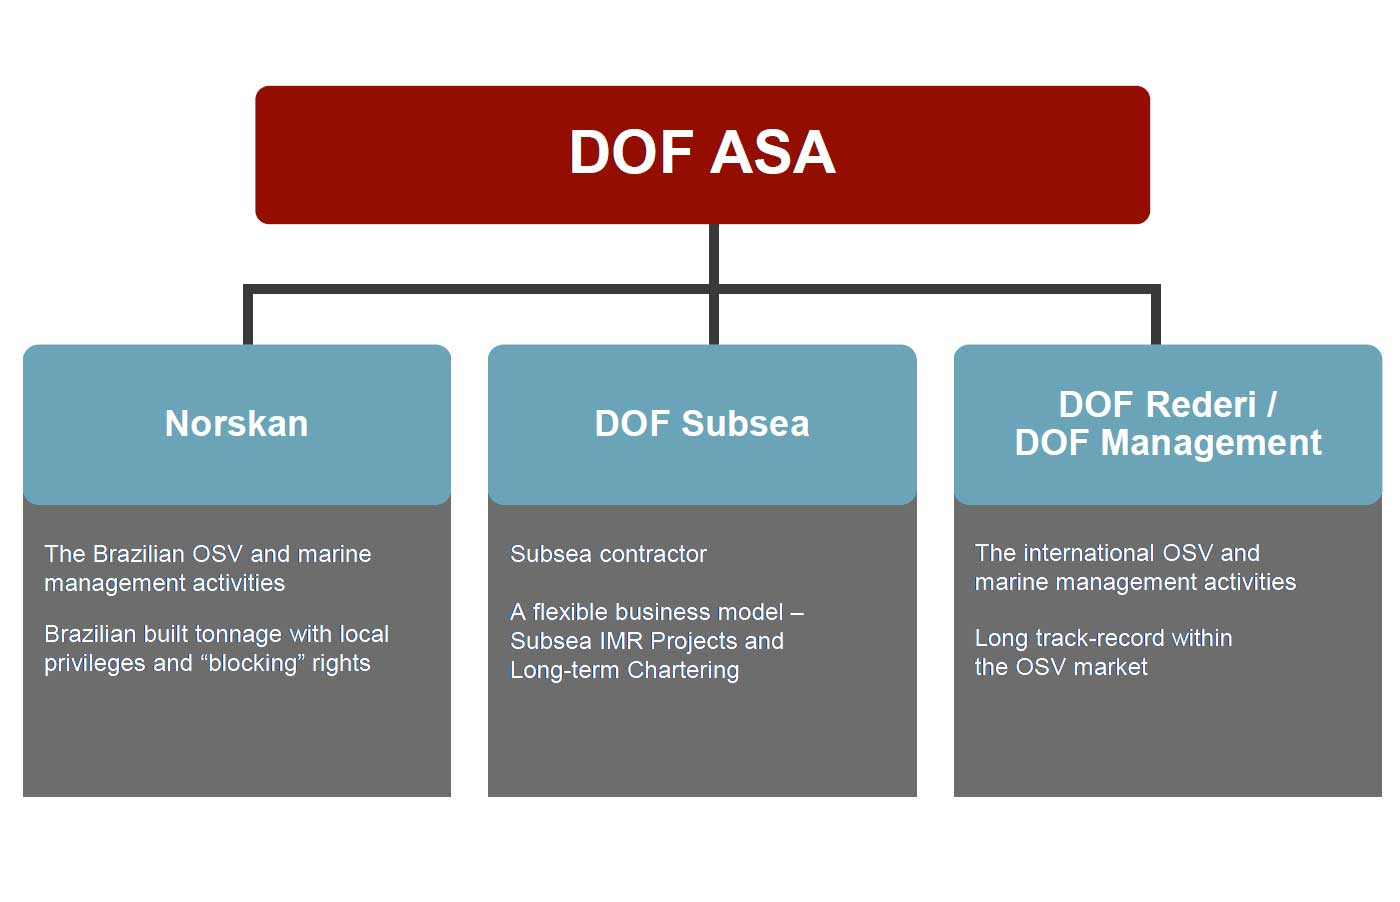 DOF ASA: Parent company of the DOF Group - Our Structure